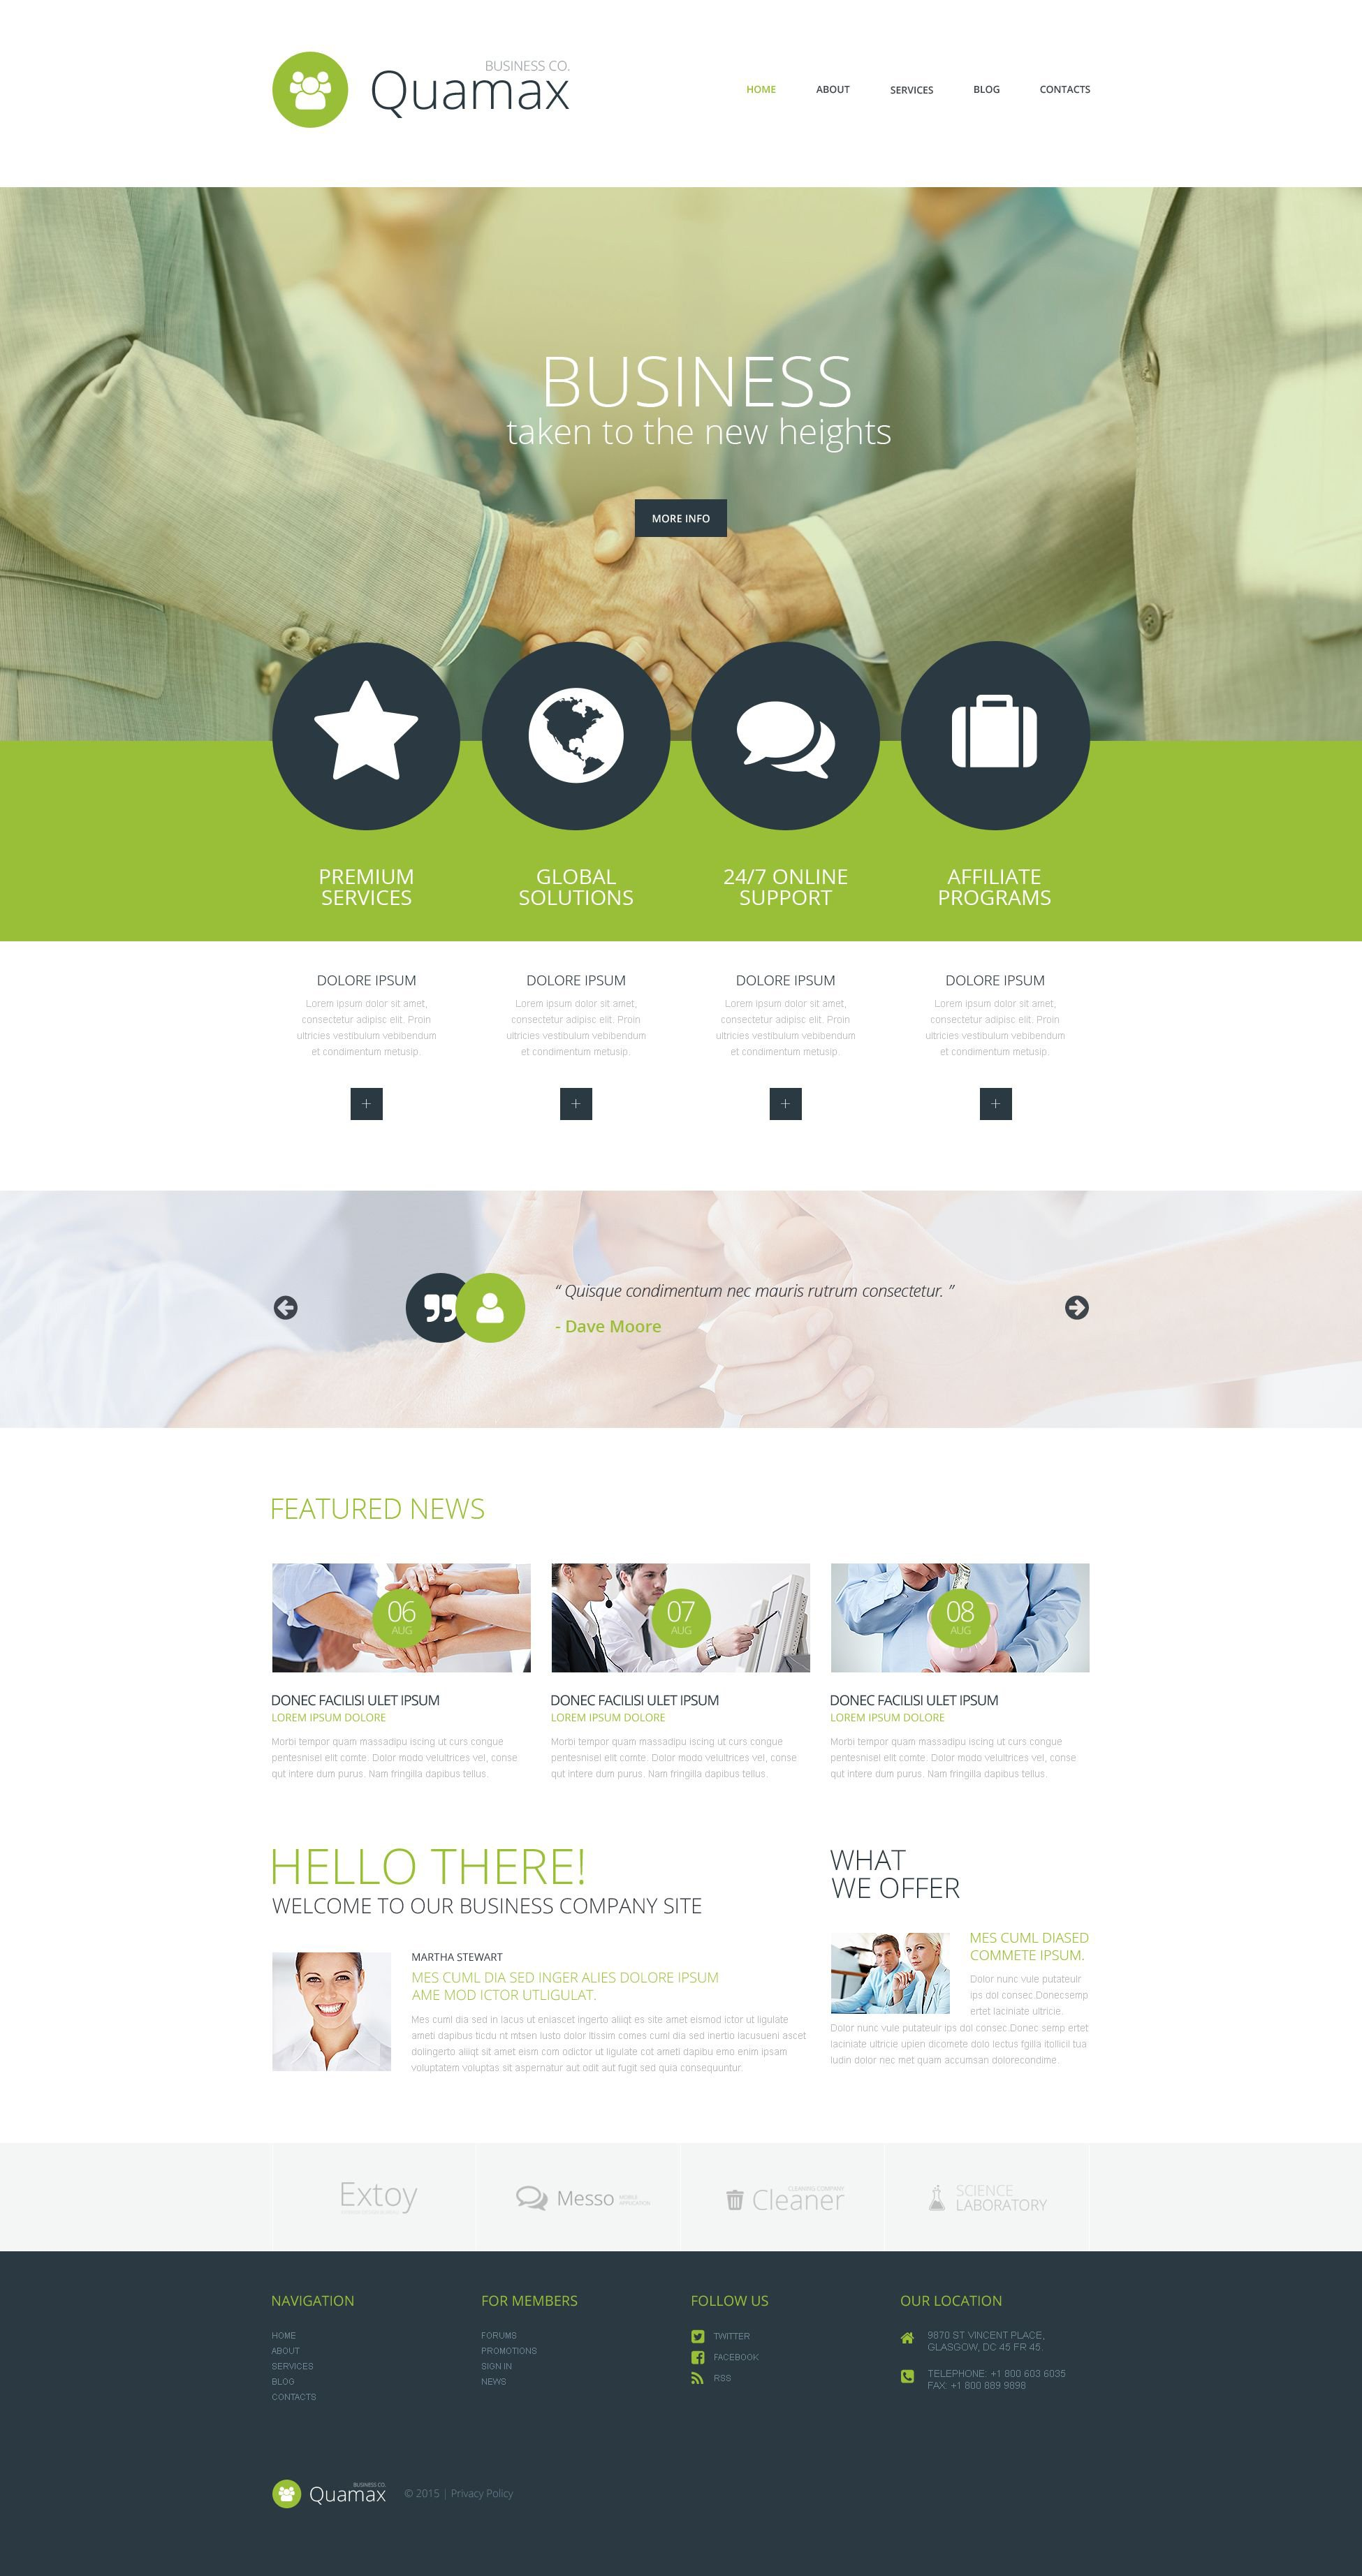 The Quamax Business Success Company WordPress Design 52950, one of the best WordPress themes of its kind (business, most popular), also known as Quamax business success company WordPress template, enterprise solution WordPress template, business WordPress template, industry WordPress template, technical WordPress template, clients WordPress template, customer support WordPress template, automate WordPress template, flow WordPress template, services WordPress template, plug-in WordPress template, flex WordPress template, profile WordPress template, principles WordPress template, web products WordPress template, technology system and related with Quamax business success company, enterprise solution, business, industry, technical, clients, customer support, automate, flow, services, plug-in, flex, profile, principles, web products, technology system, etc.